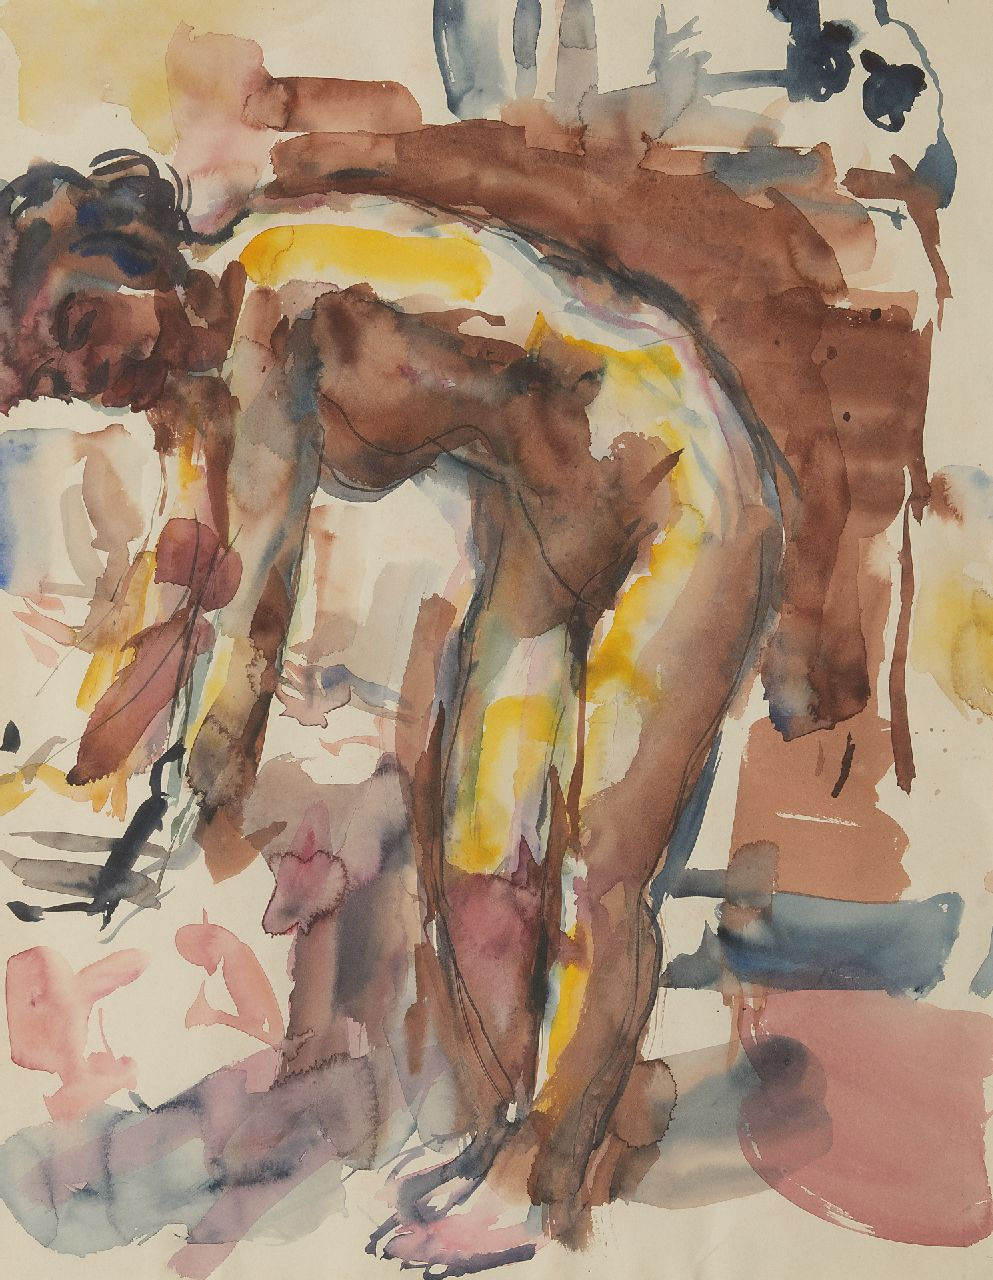 Dijkstra J.  | Johannes 'Johan' Dijkstra | Watercolours and drawings offered for sale | Model in the artist's studio, watercolour on paper 55.5 x 44.0 cm